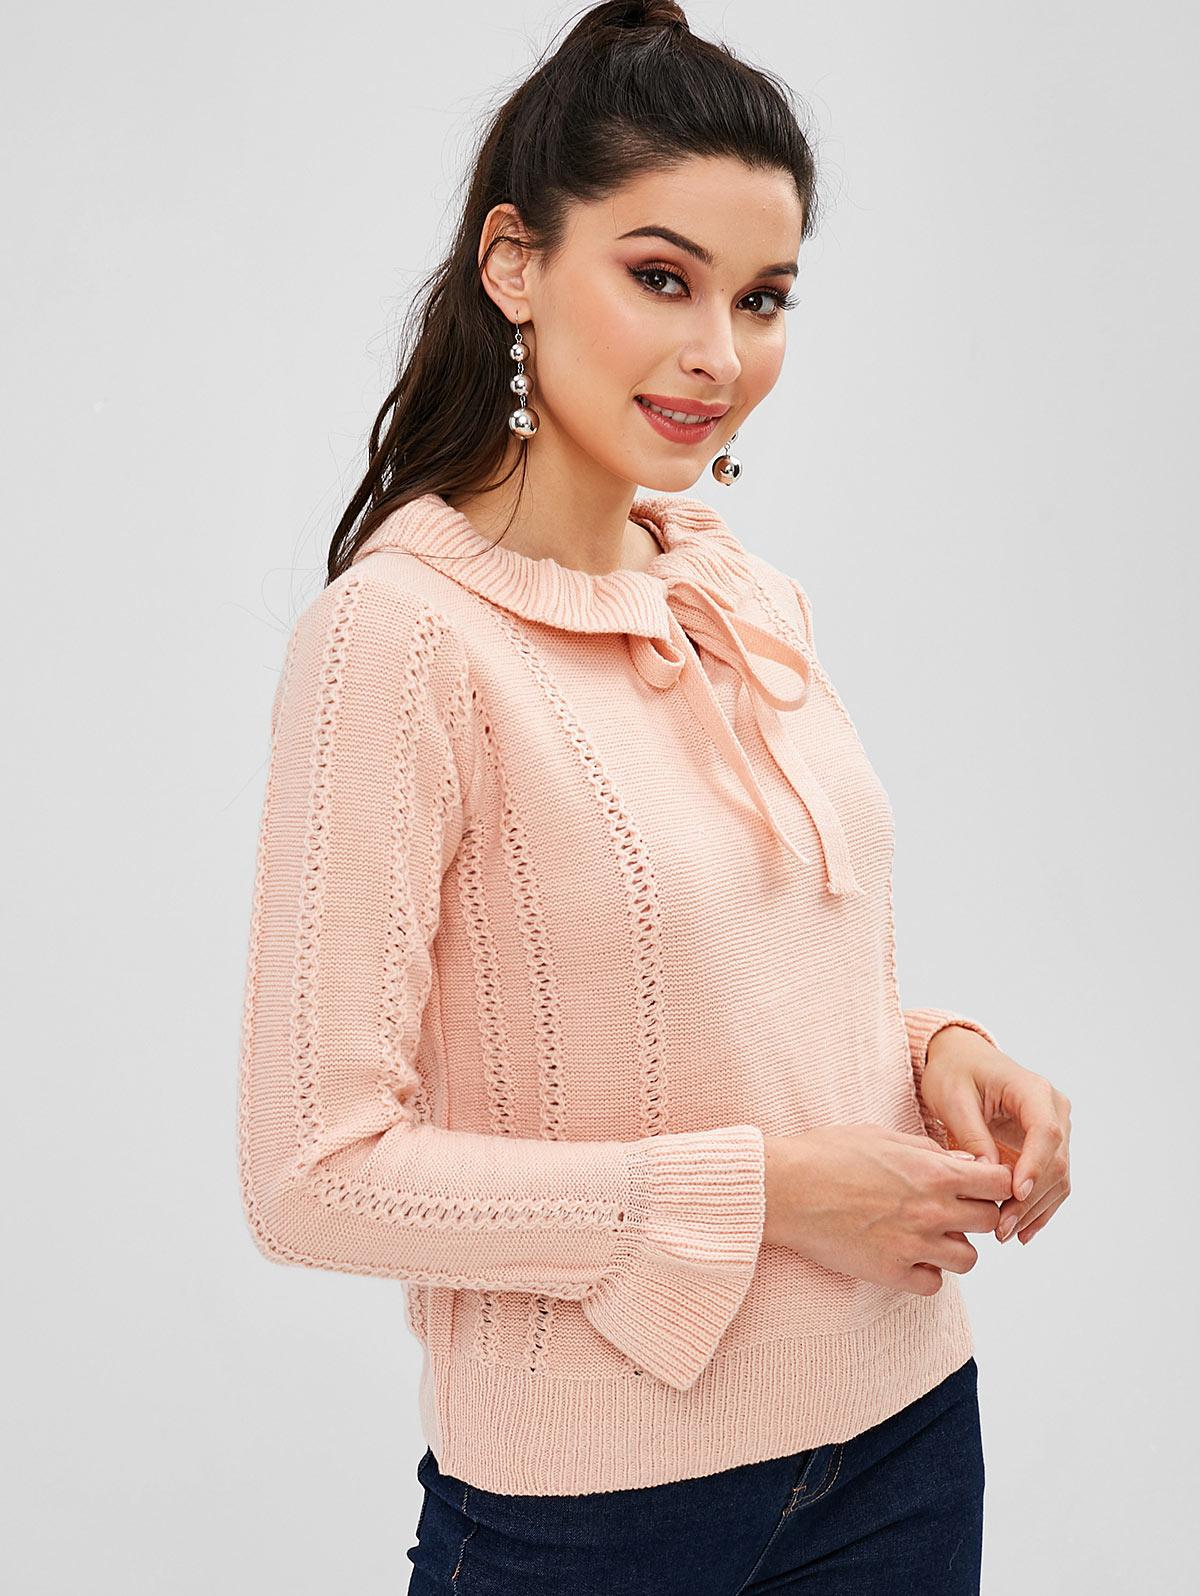 Ruffles Bow Tie Pullover Sweater, Light pink